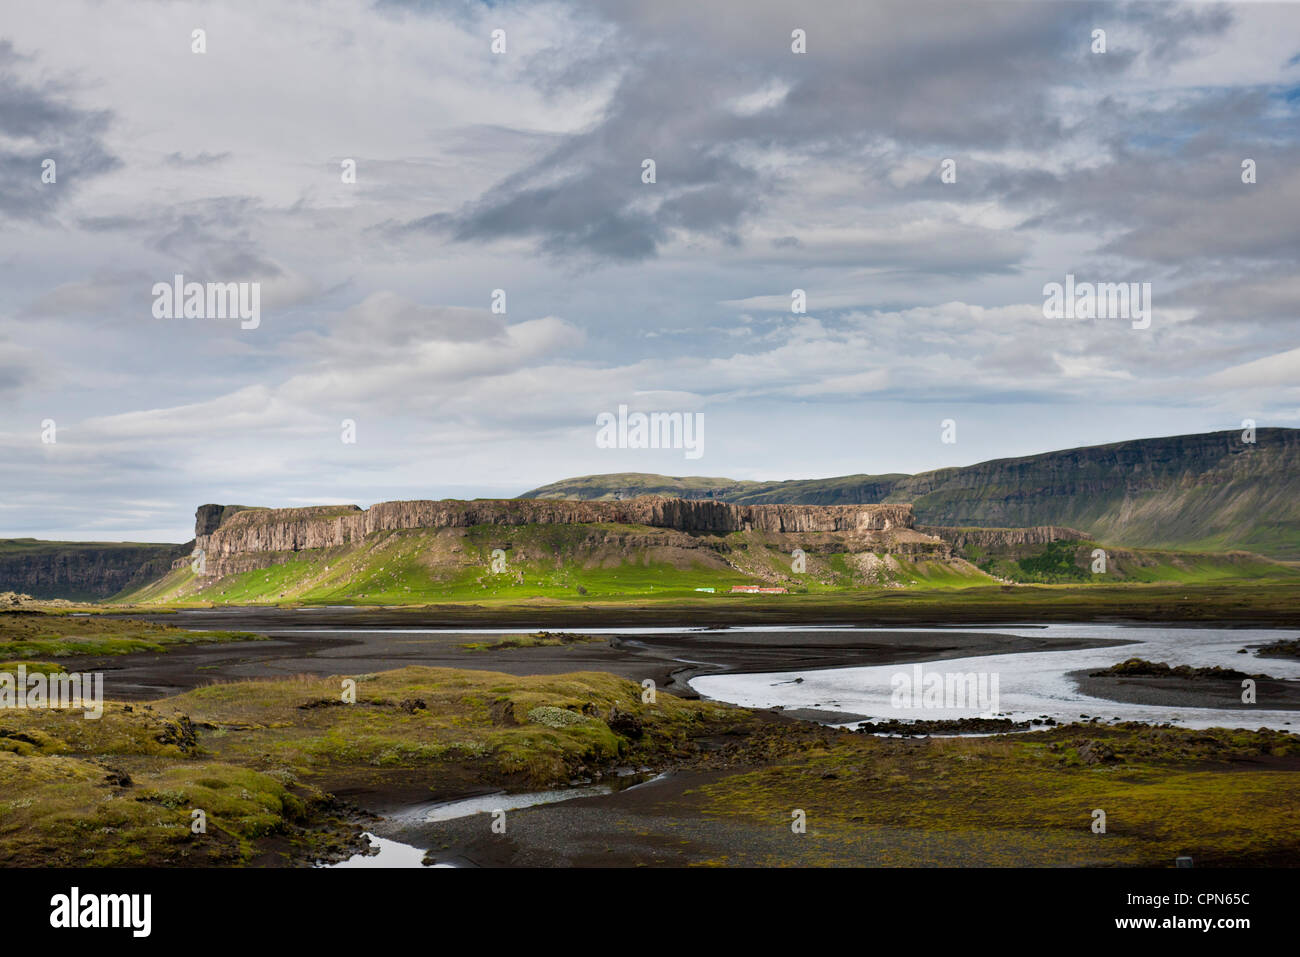 Iceland, stream running through lava field, basalt cliffs in the distance - Stock Image